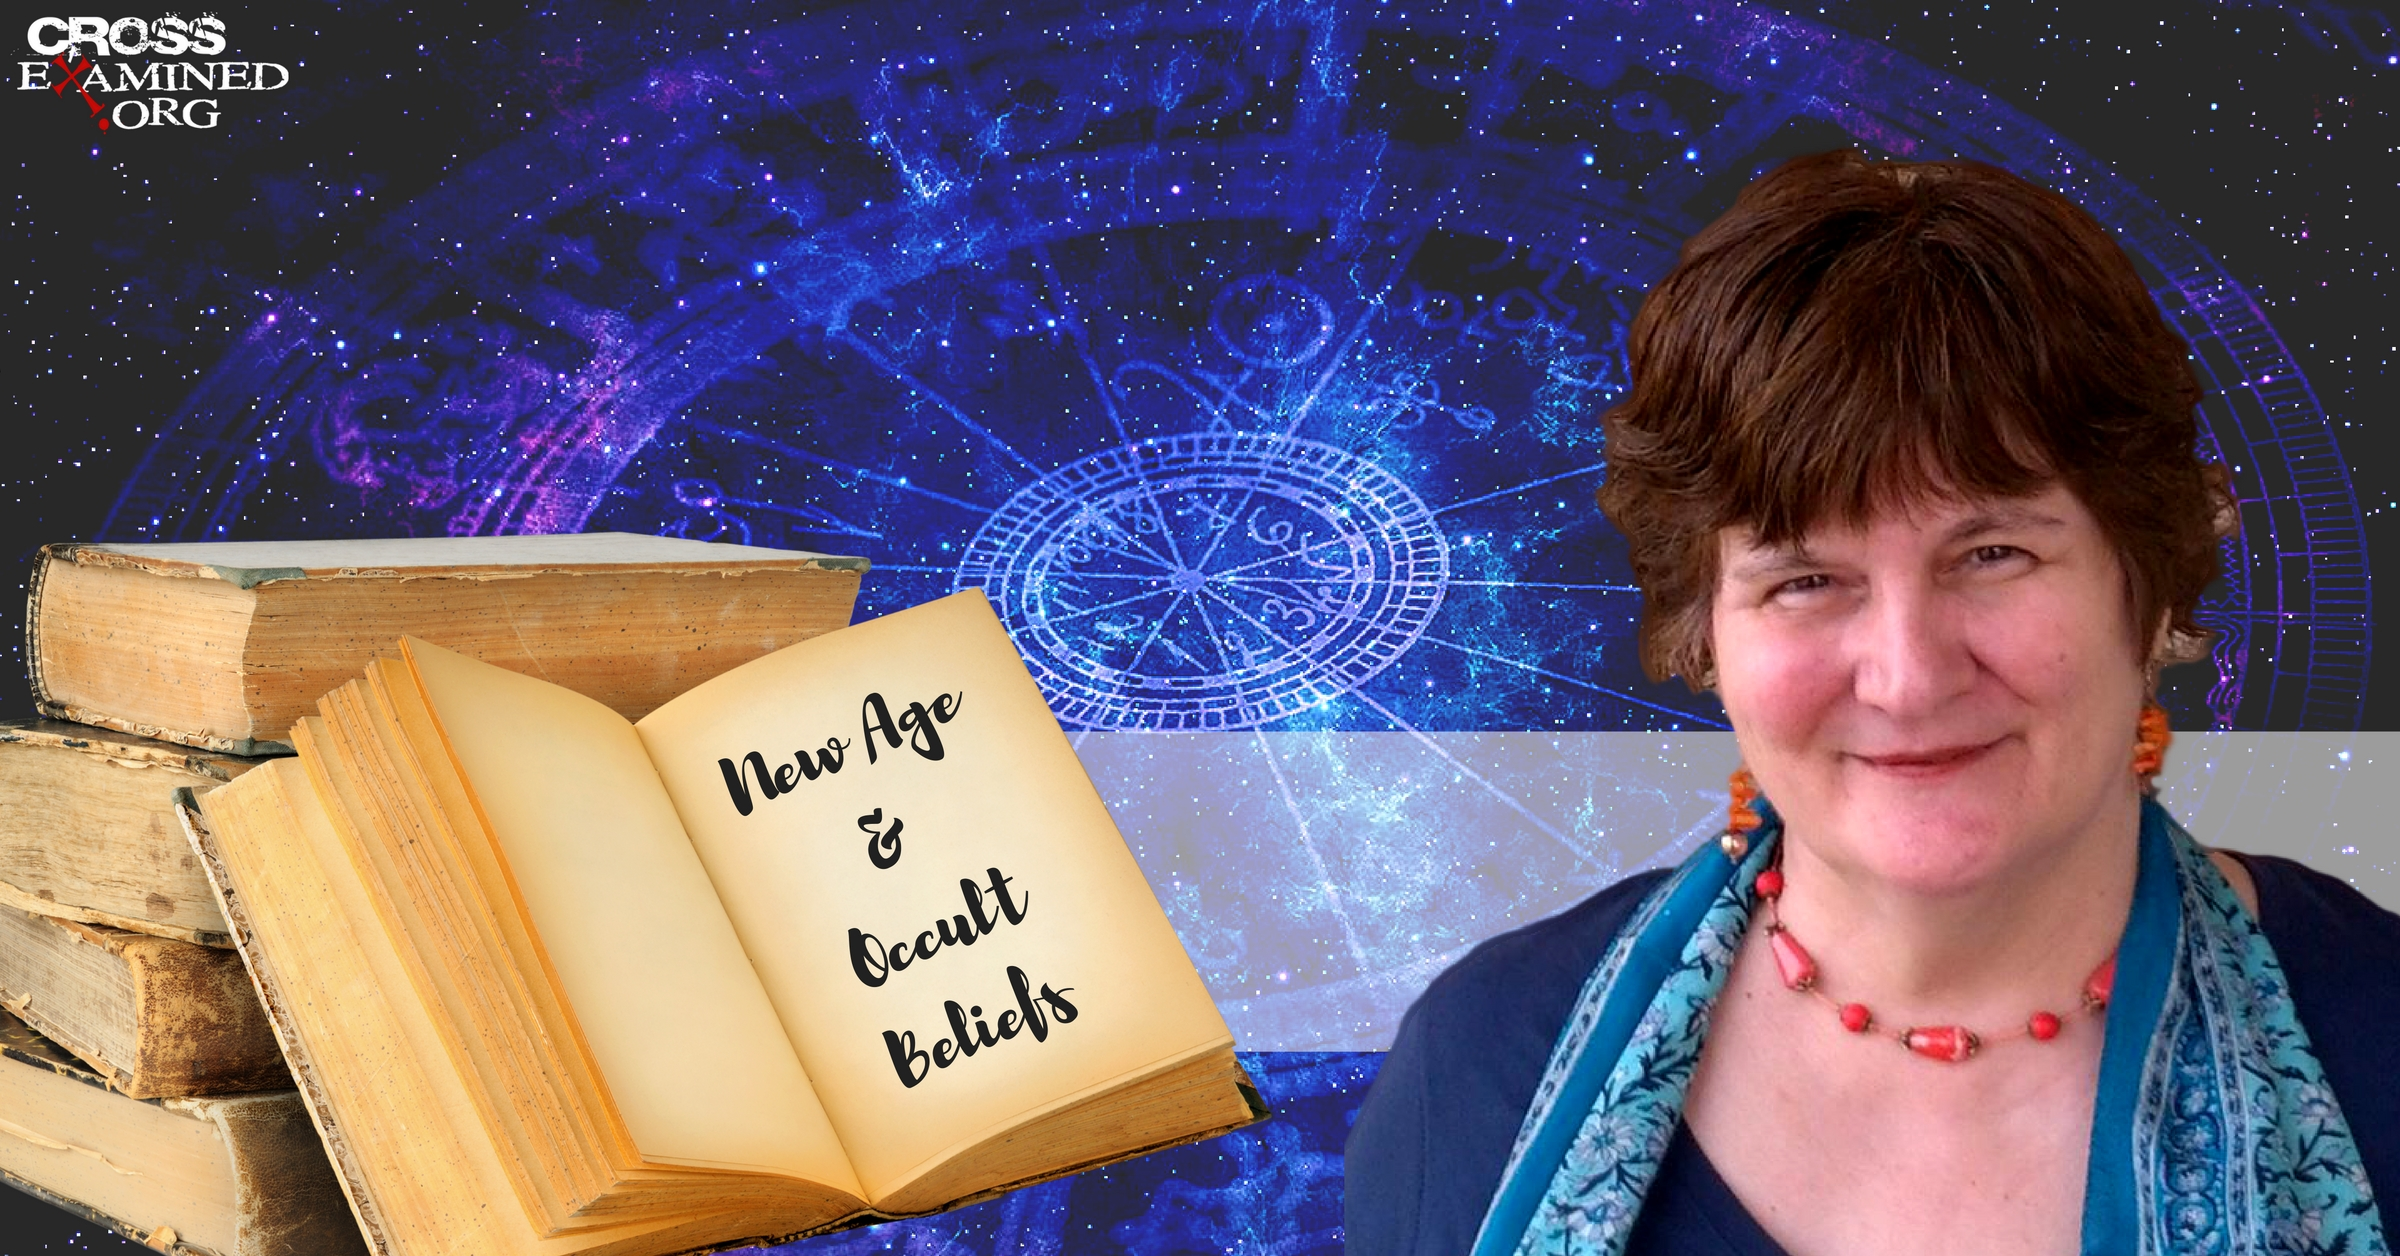 What Christian Parents Need to Know About New Age and Occult Beliefs